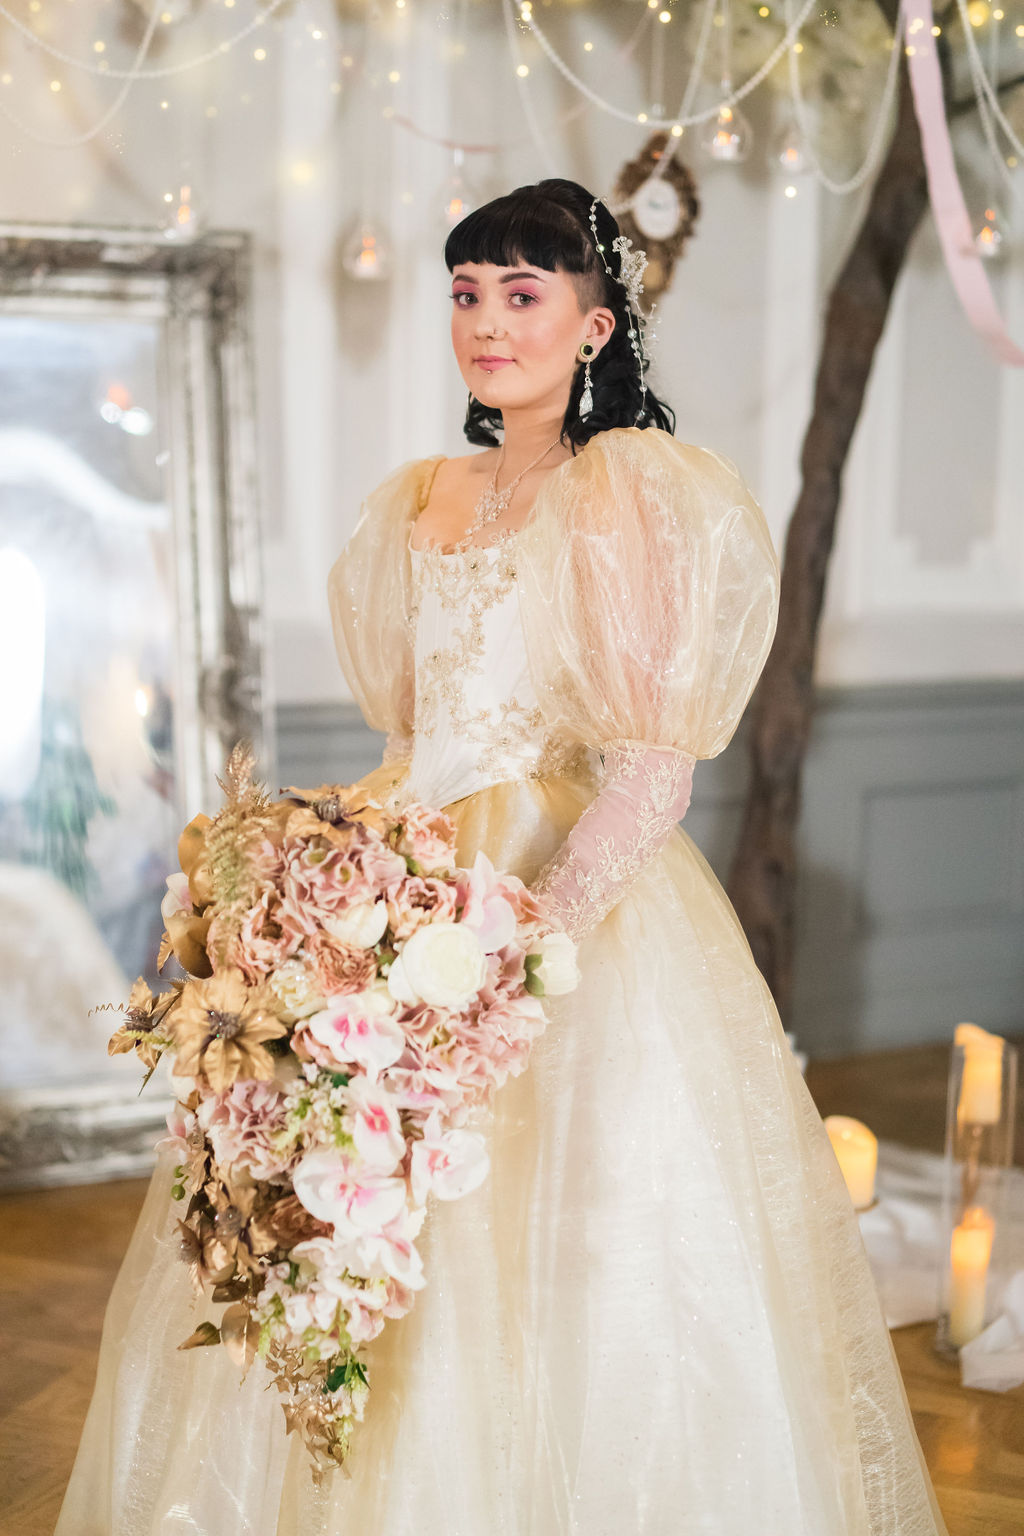 Fairytale bride with oversized dramatic bridal bouquet and princess wedding dress for labyrinth themed wedding day